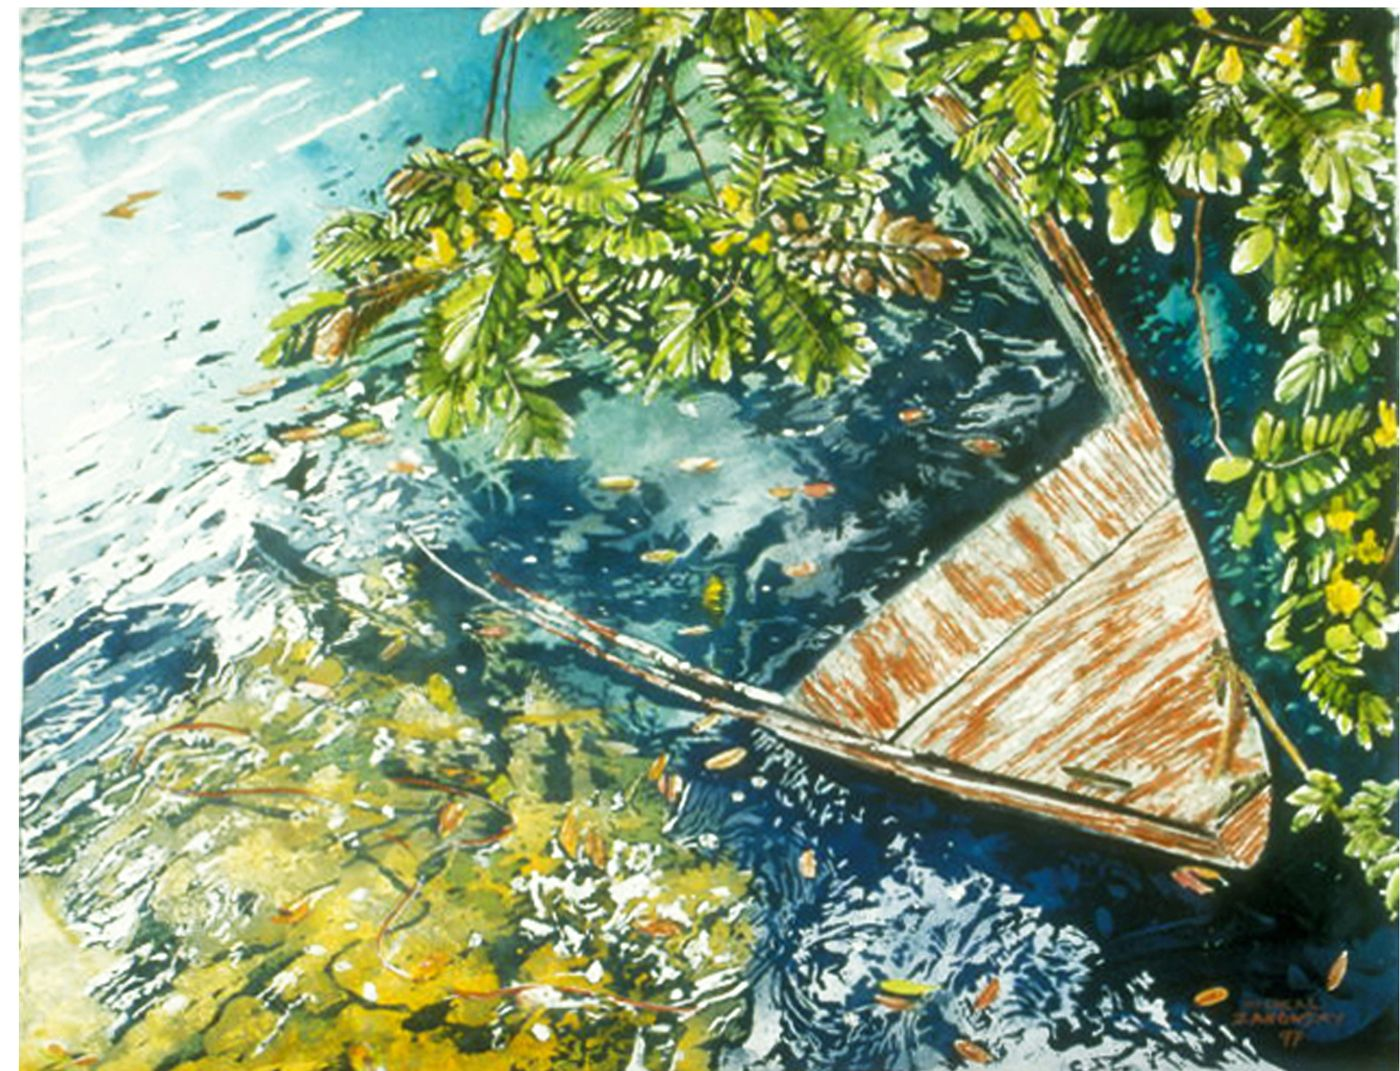 "boat full of rain 22"" x 30"" riddell bay bda  micheal zarowsky / watercolour on arches paper / (private collection)"